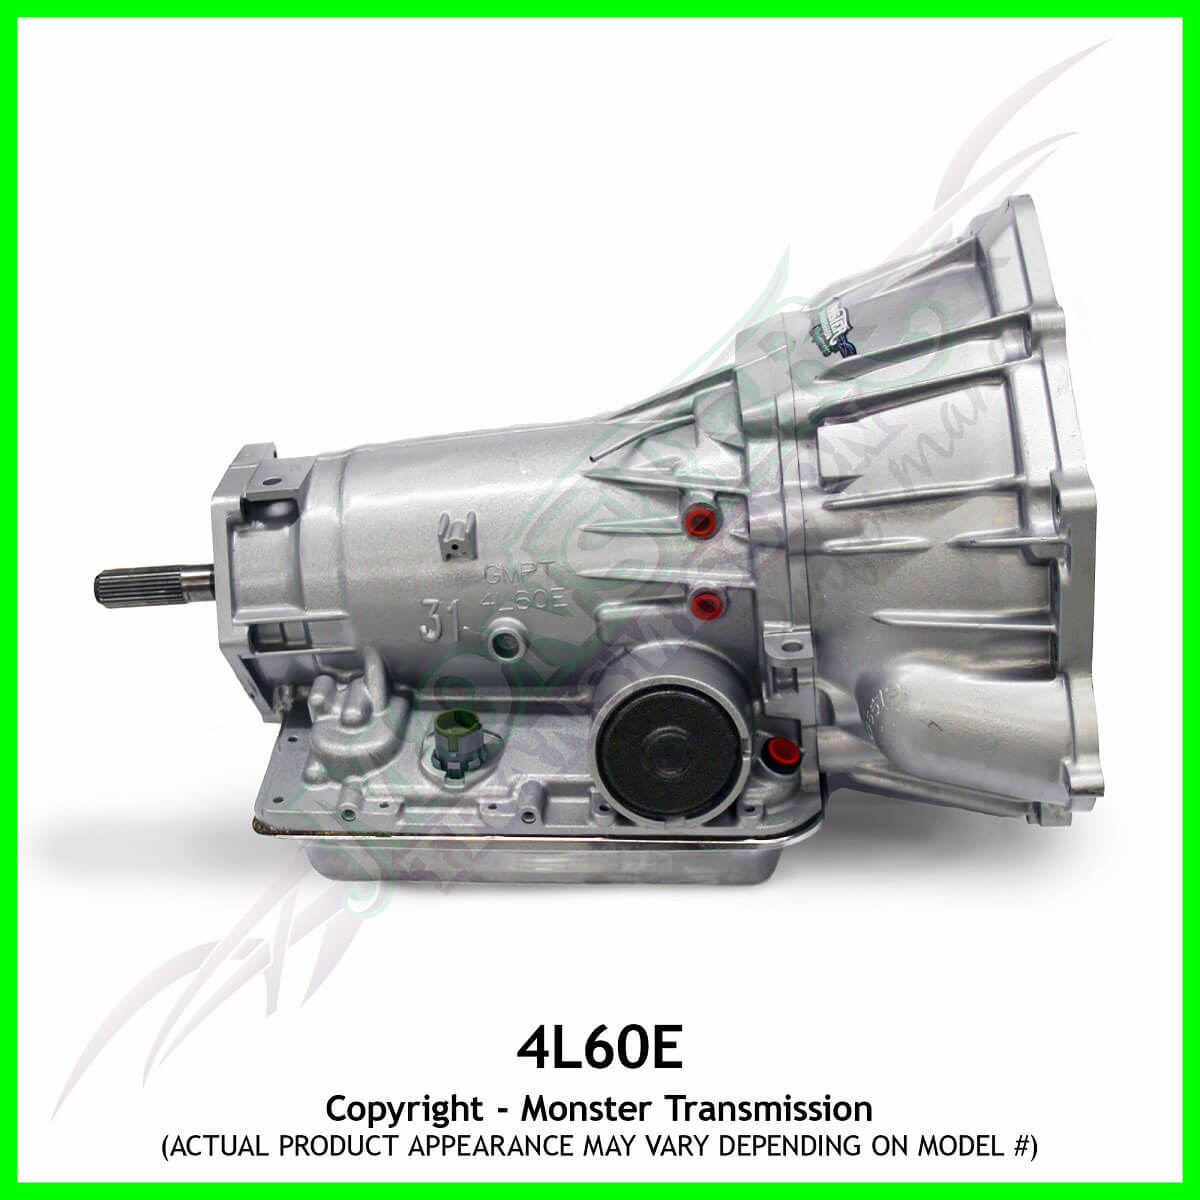 Tahoe 2003 chevy tahoe transmission : 4L60E Transmission Remanufactured 4x4 Heavy Duty 2pc Case 4WD